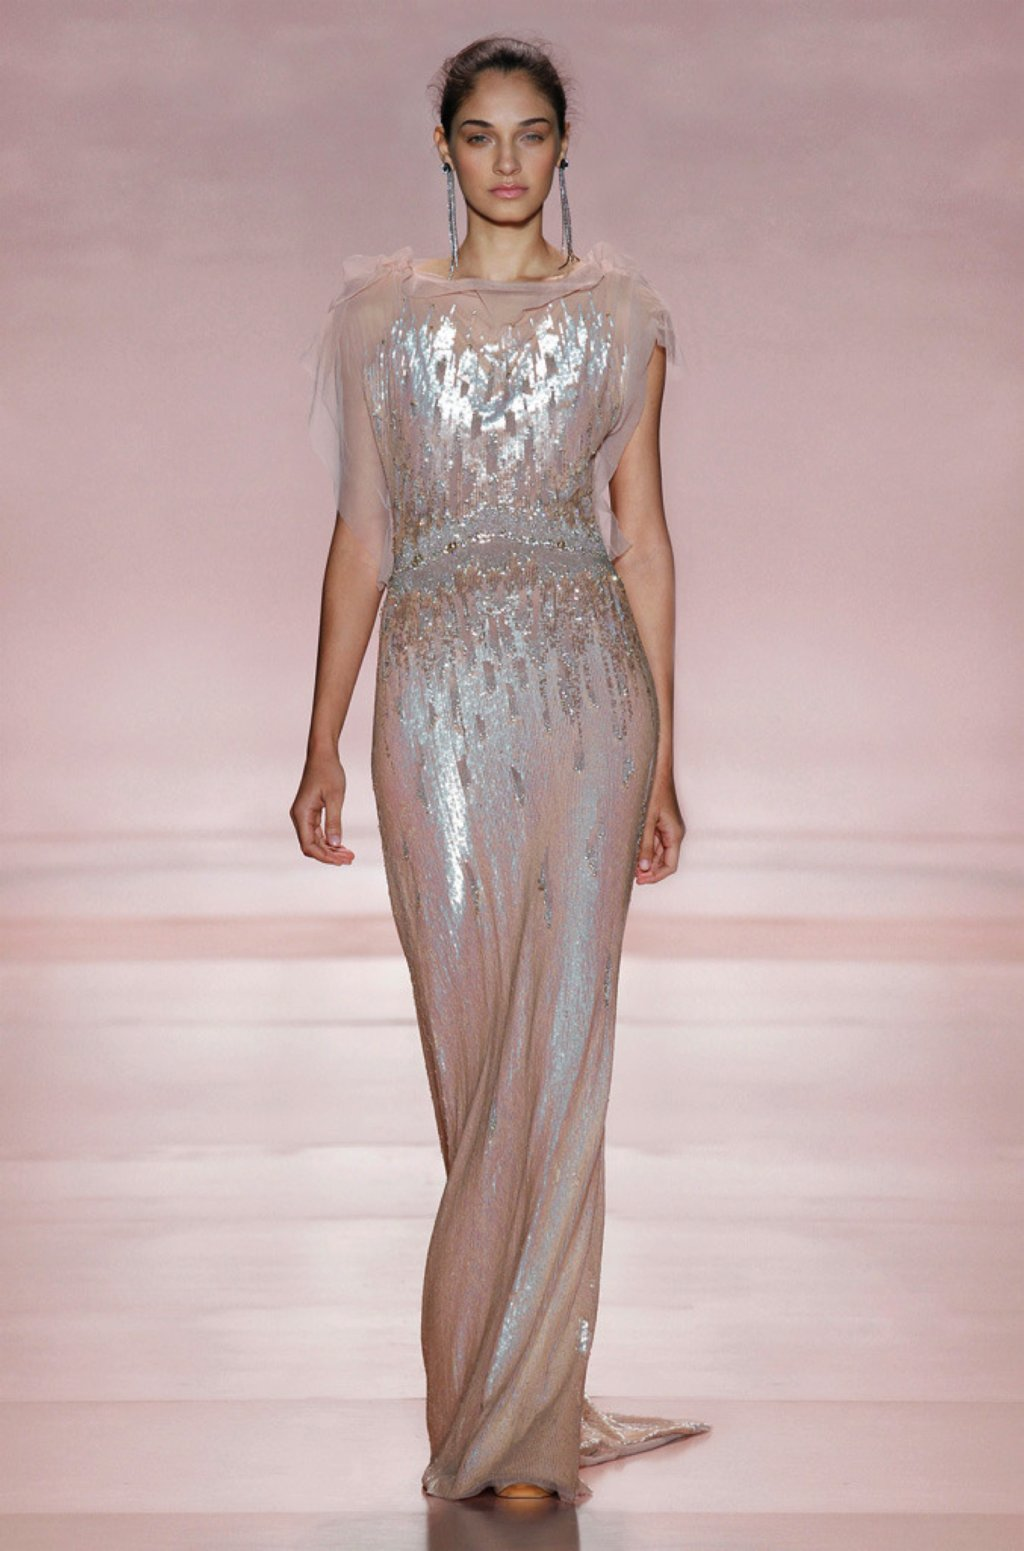 Jenny-packham-bridal-gown-wedding-accessories.full